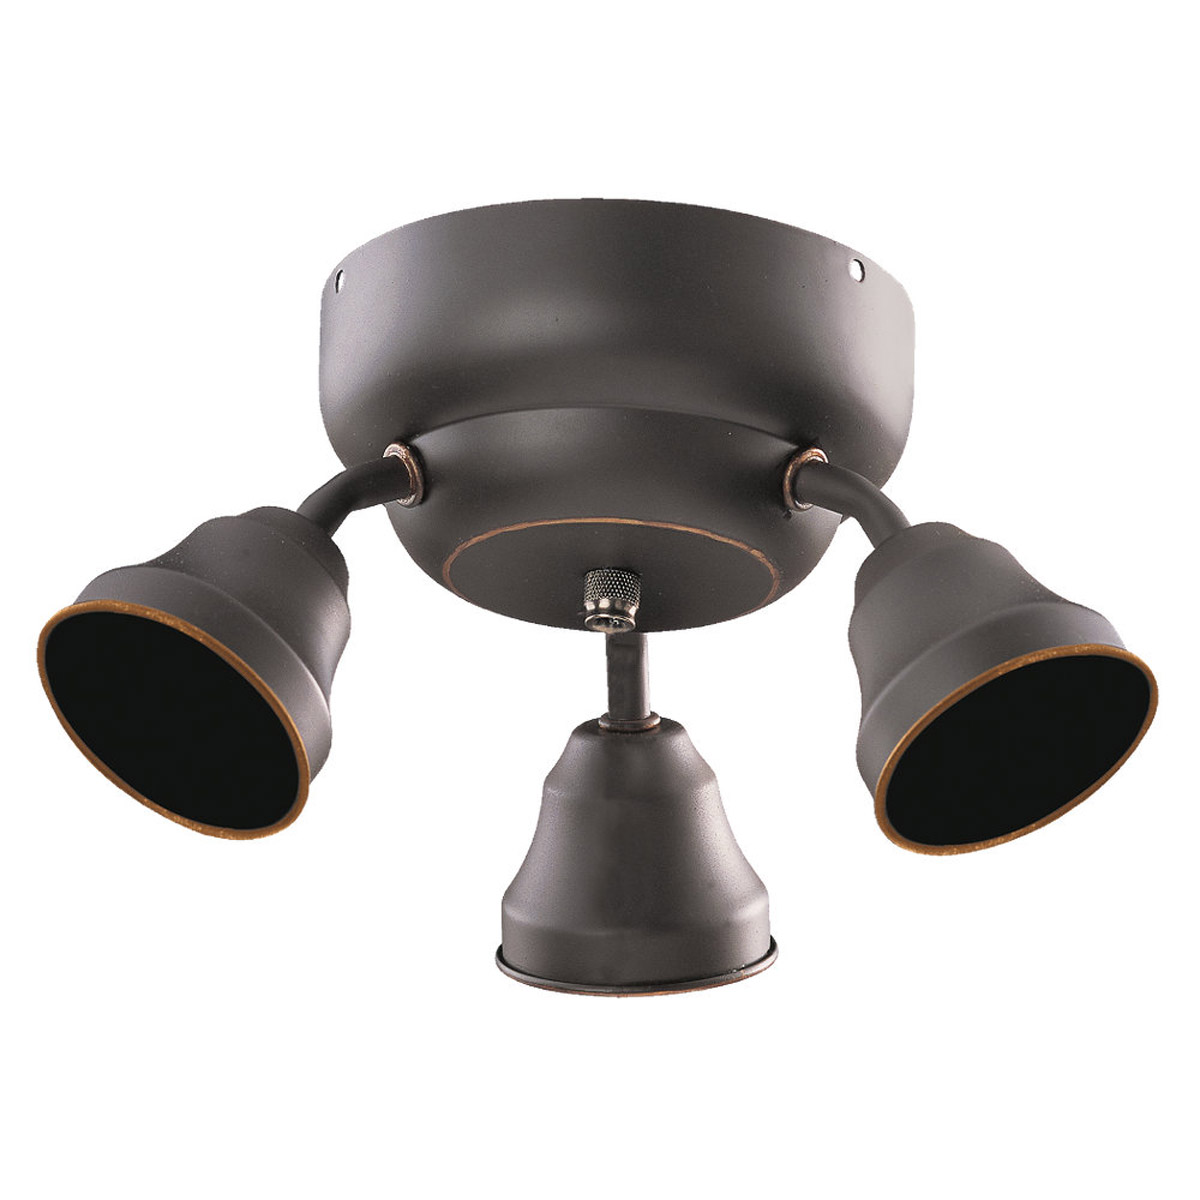 Sea Gull Lighting Signature 3 Light Fan Light Kit Fluorescent in Heirloom Bronze 16024BLE-782 photo